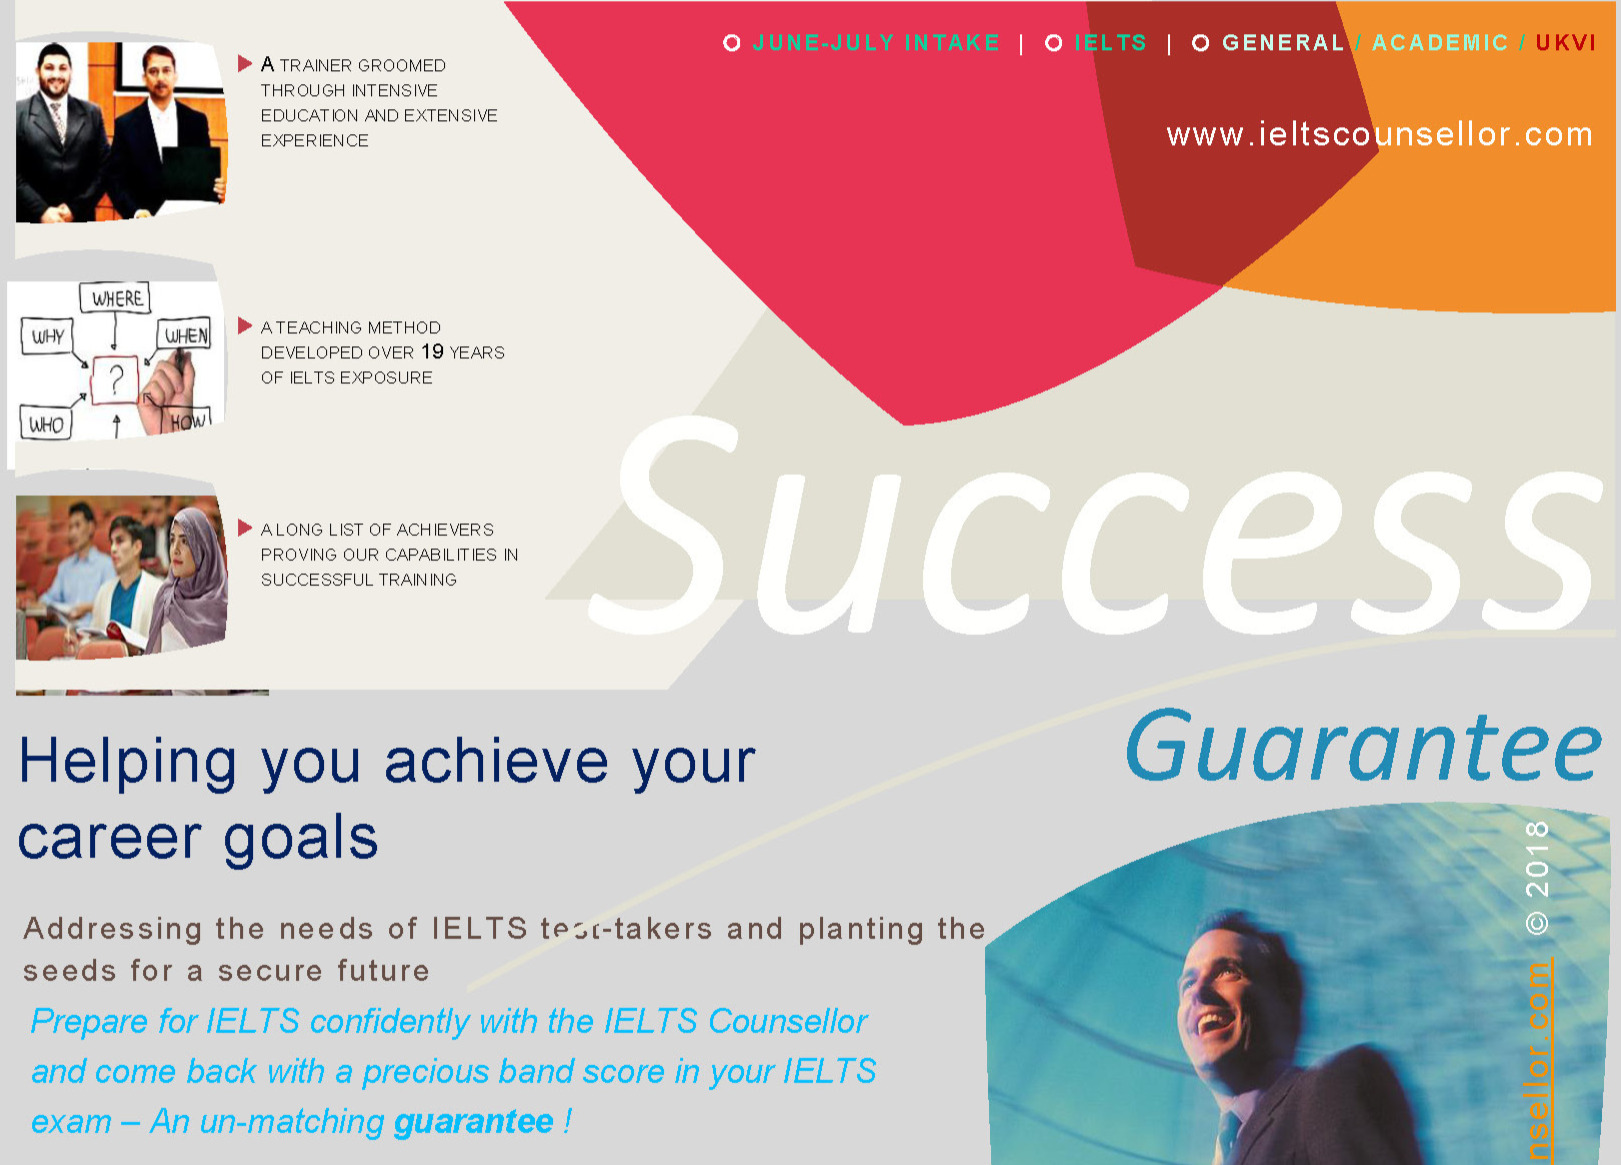 IELTS Preparation through IELTS Counsell